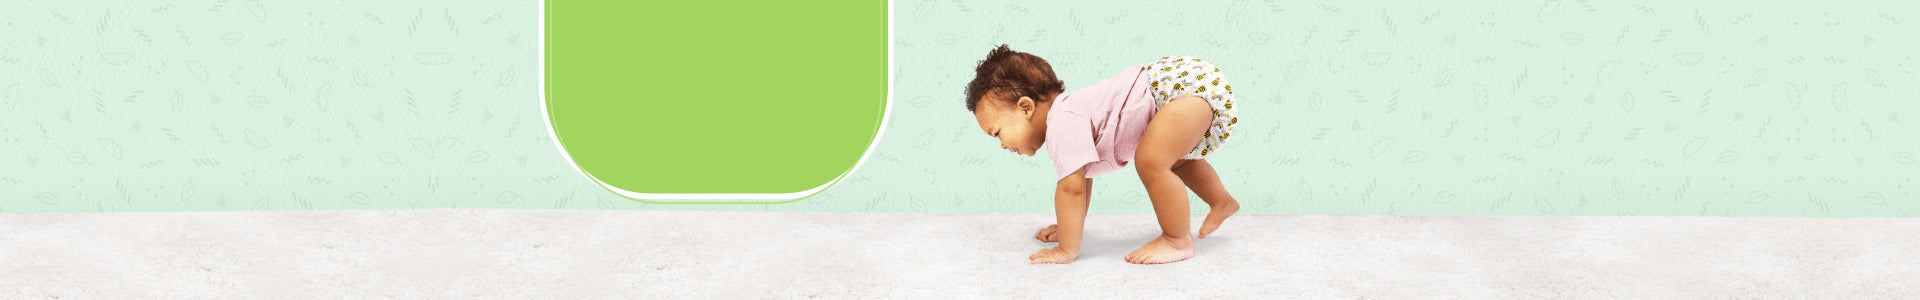 Reusable nappy week page banner with a baby crawling on hands and feet